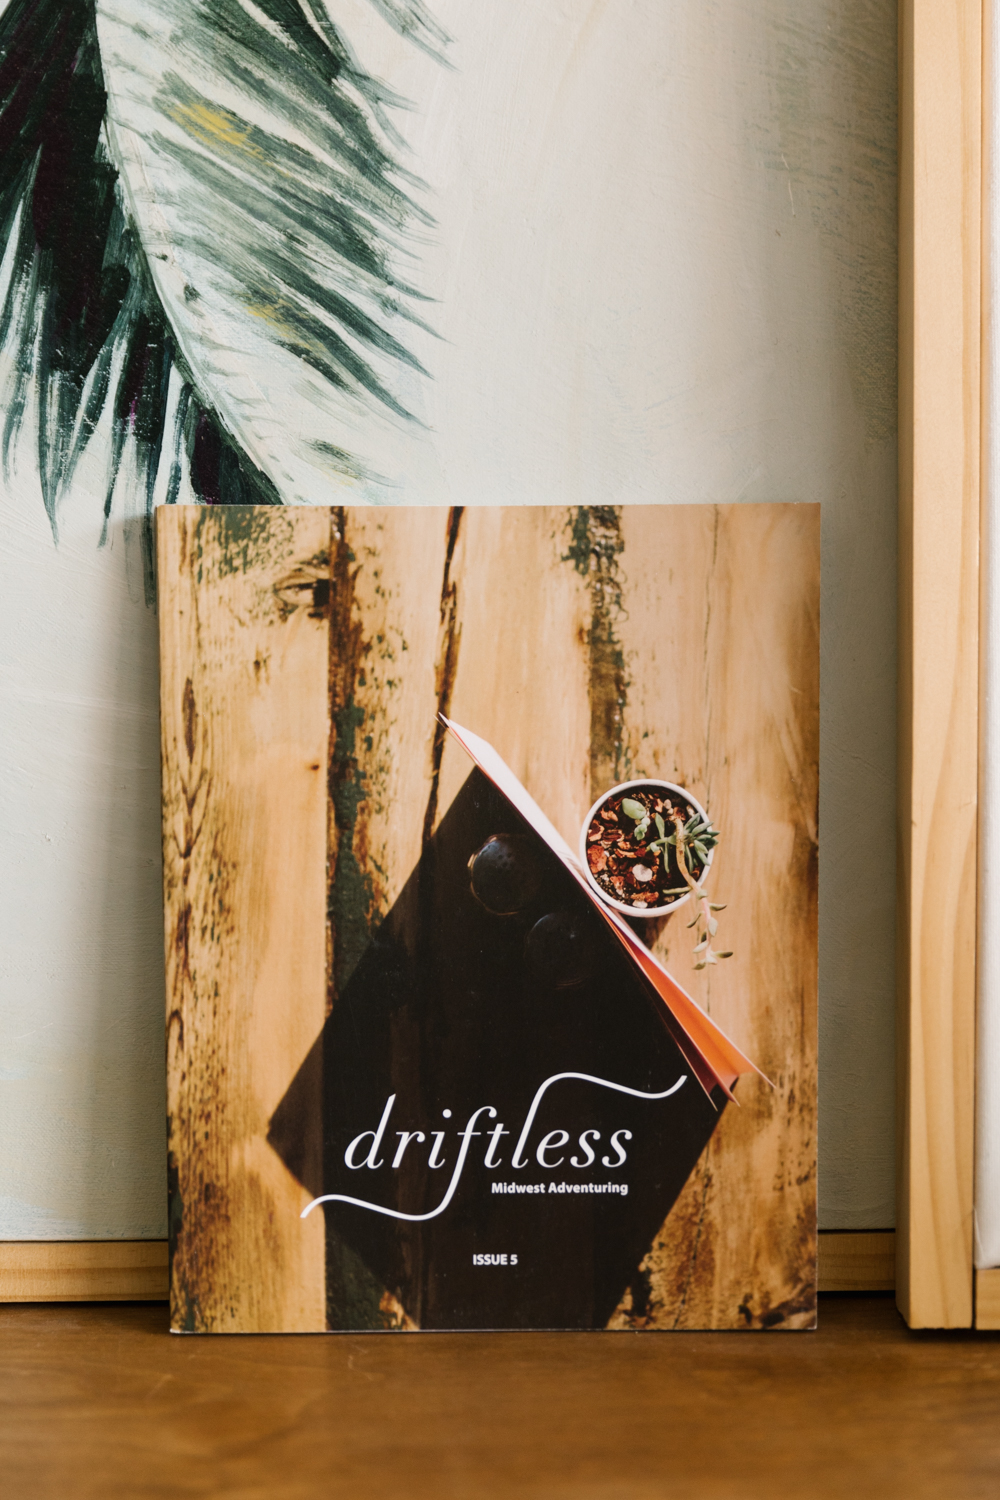 Issue 5 of Driftless Magazine contains an amazing city guide of Detroit, Michigan by photographer Jesse David Green.